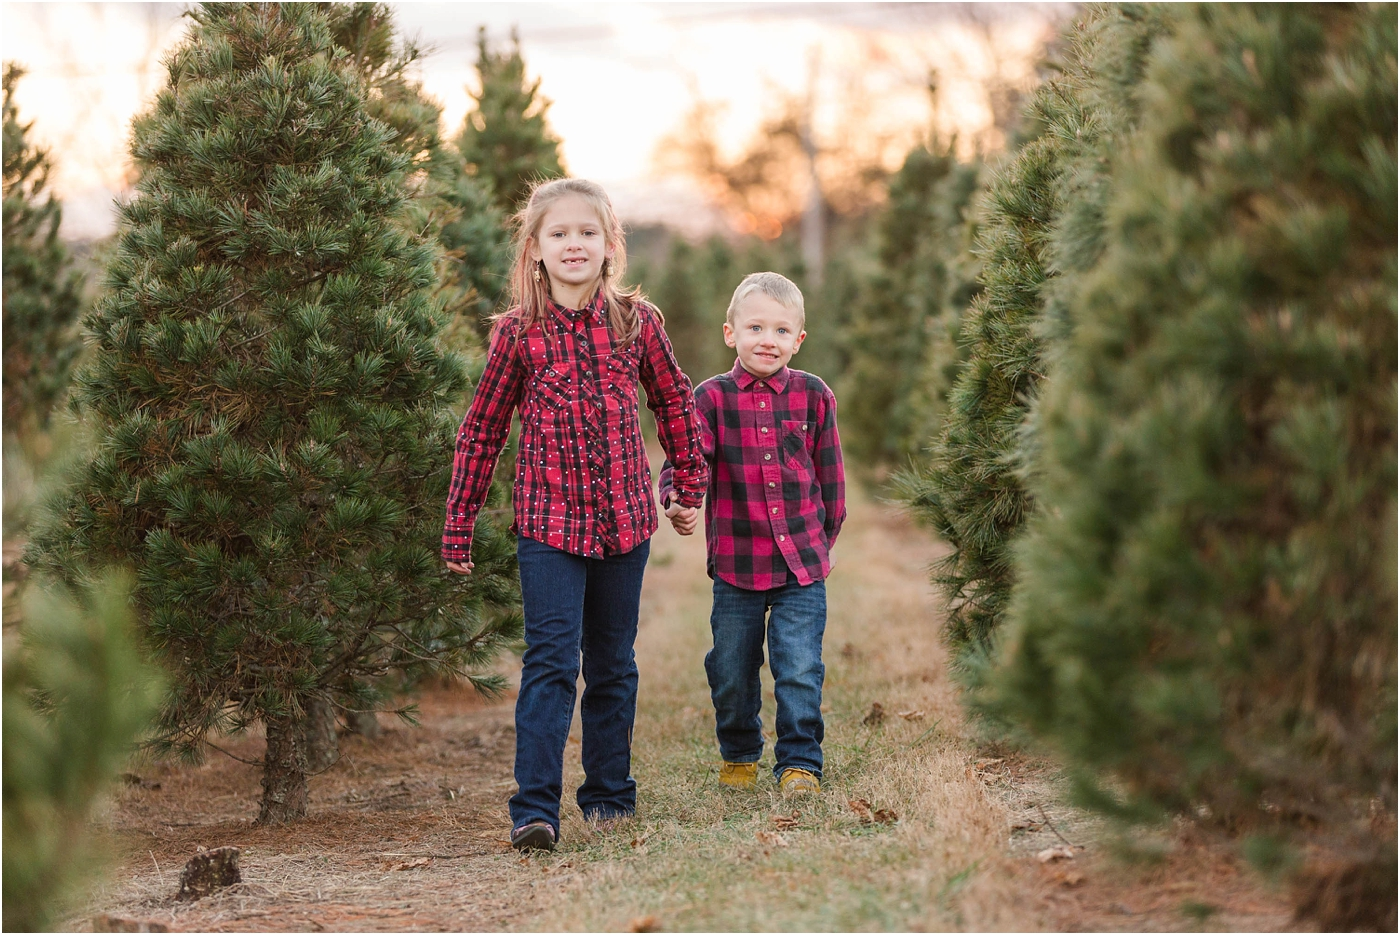 Christmas Tree Farm Mini Sessions.Lindzie Jake Christmas Tree Farm Mini Session Maryland